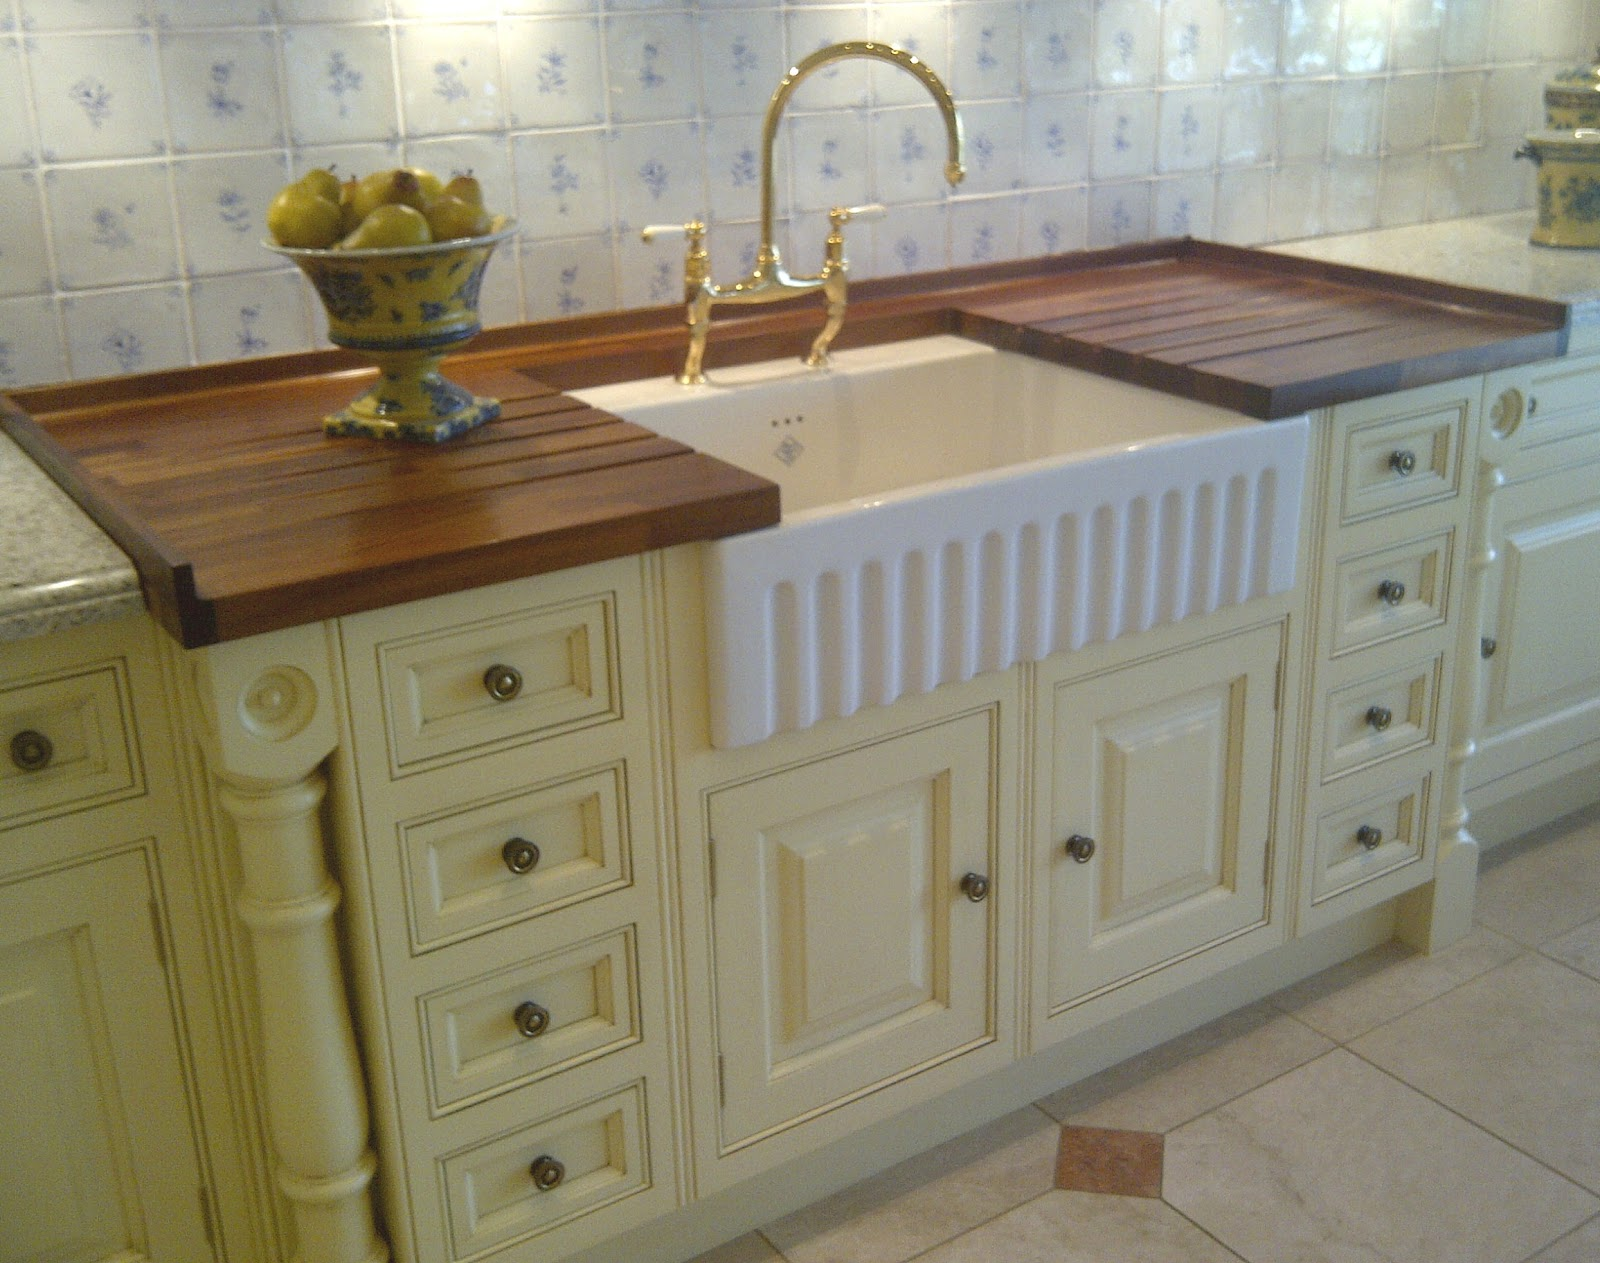 Perrin And Rowe Kitchen Faucet Tradition Interiors Of Nottingham Kitchen Sinks Baths Taps Etc